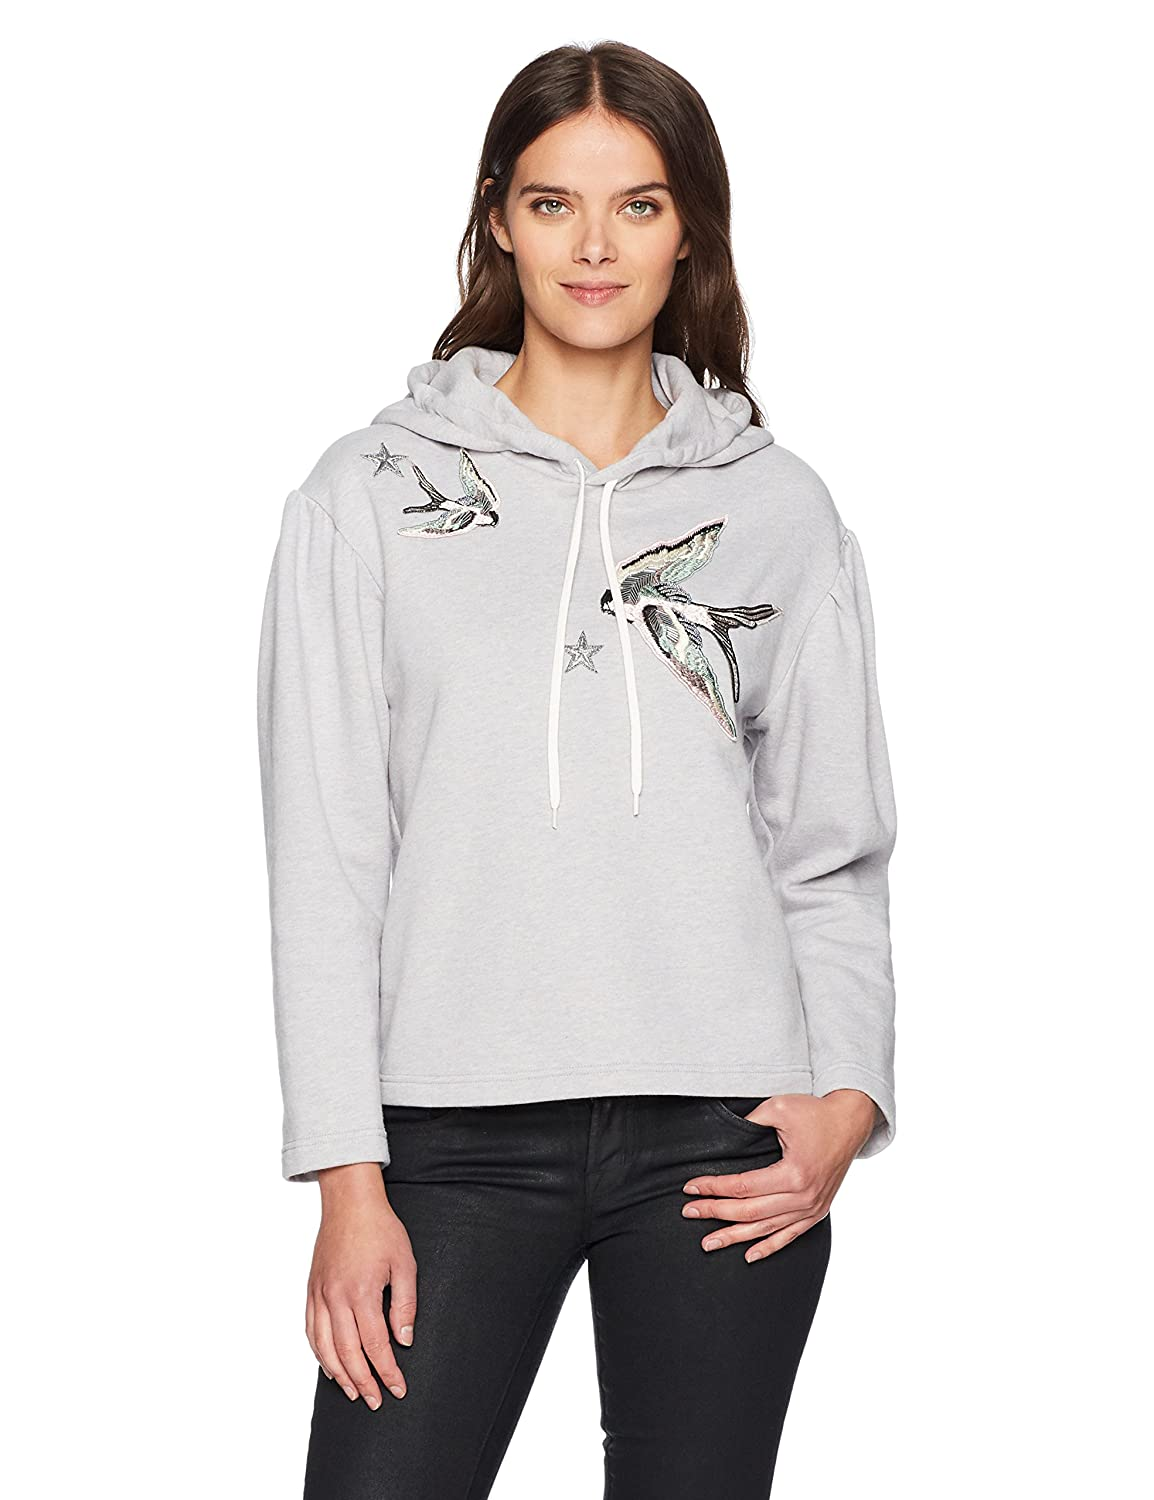 Rebecca Taylor Women's Embroidered Hoodie Pullover Rebecca Taylor Women' s 617 339 B382